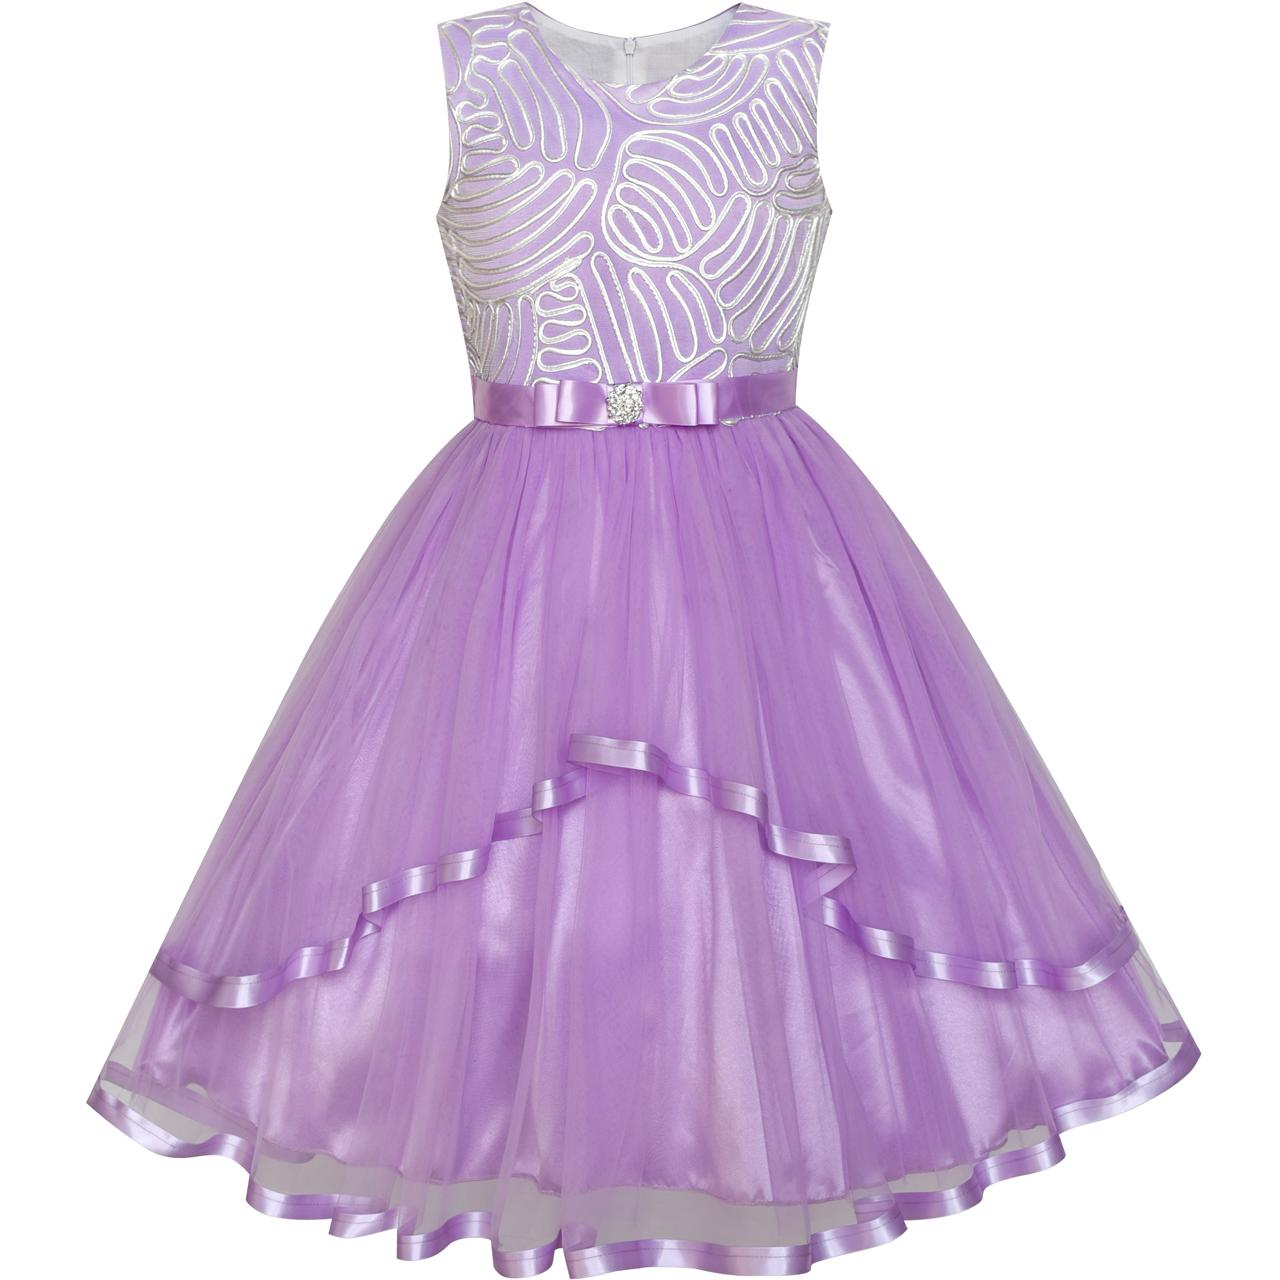 Sunny Fashion Flower Girl Dress Purple Belted Wedding Party Bridesmaid 2018 Summer Princess Dresses Kids Clothes Size 4-12 summer princess wedding bridesmaid flower girl dress for child wear kids clothes white party tutu dresses for girl 3 12y